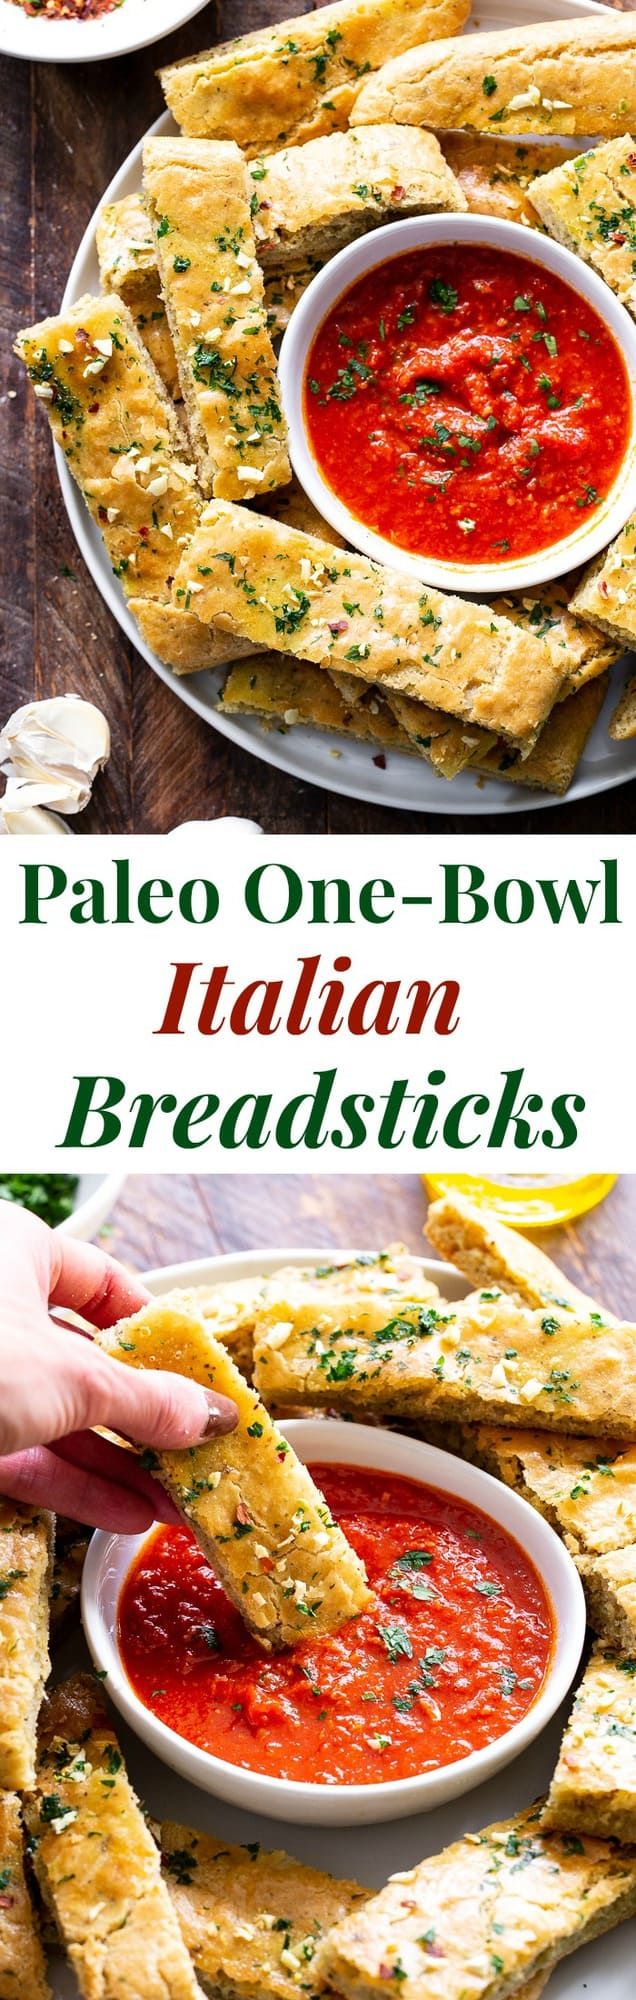 These easy, one bowl Paleo breadsticks are loaded with flavor, Italian herbs and garlic, and have the perfect chewy texture.  They're great when you're craving bread but want to keep things clean!  Gluten-free, grain free, dairy free and perfect for dipping.